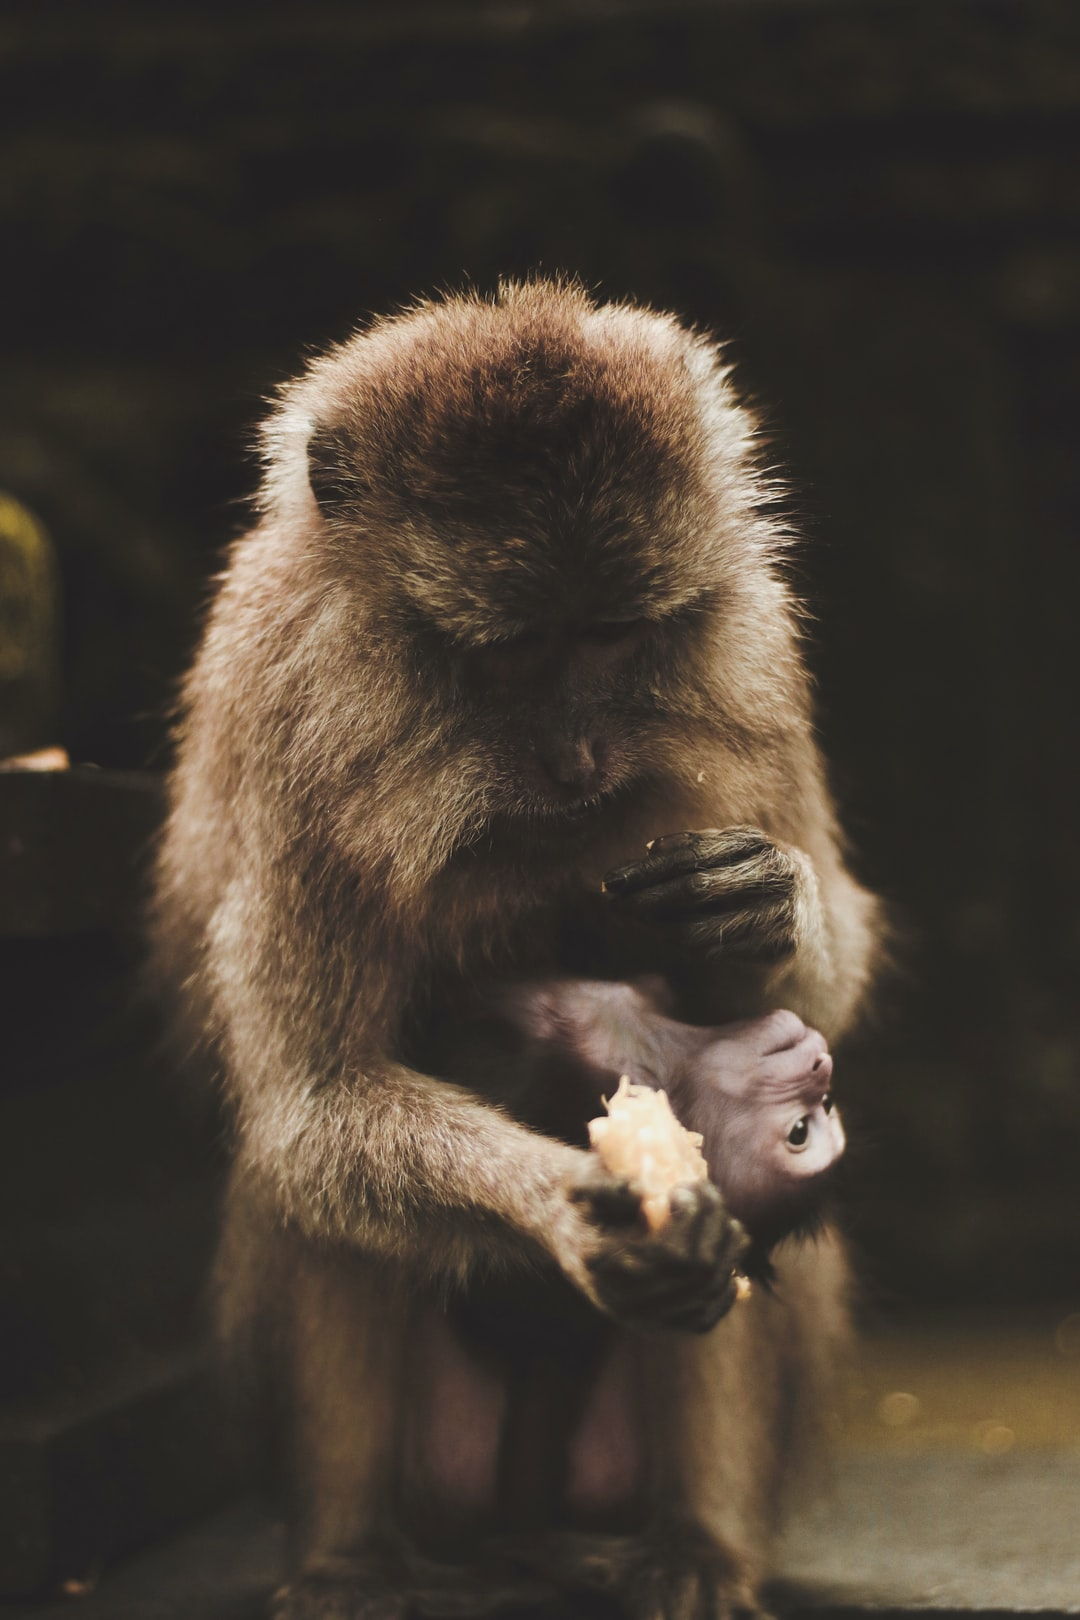 The love of a mother feeding her child, it does not matter if you are a human or an animal, there's only one mother in your life, and she will be there for you forever